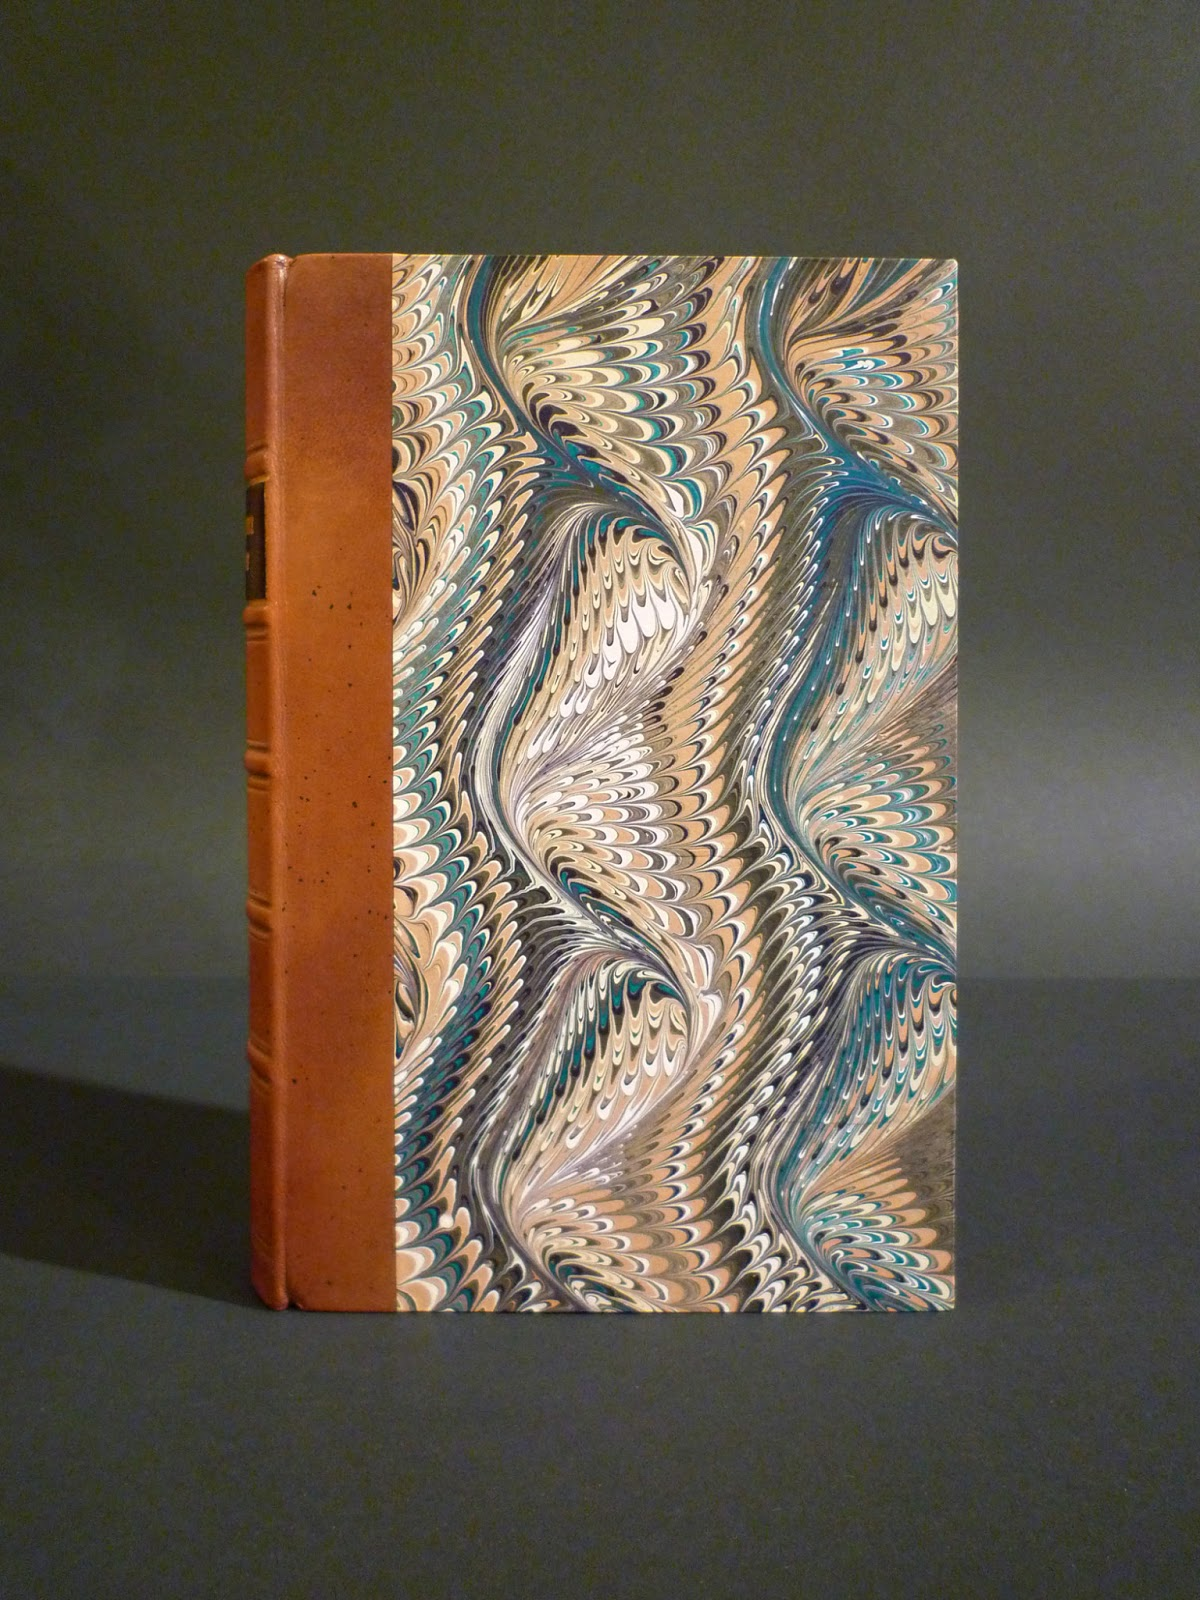 thesis binding oxfordshire 1982) together make up the kemp hall bindery group - oxford's premier  to  oxford university, which we serve in many ways binding theses for students ( who.